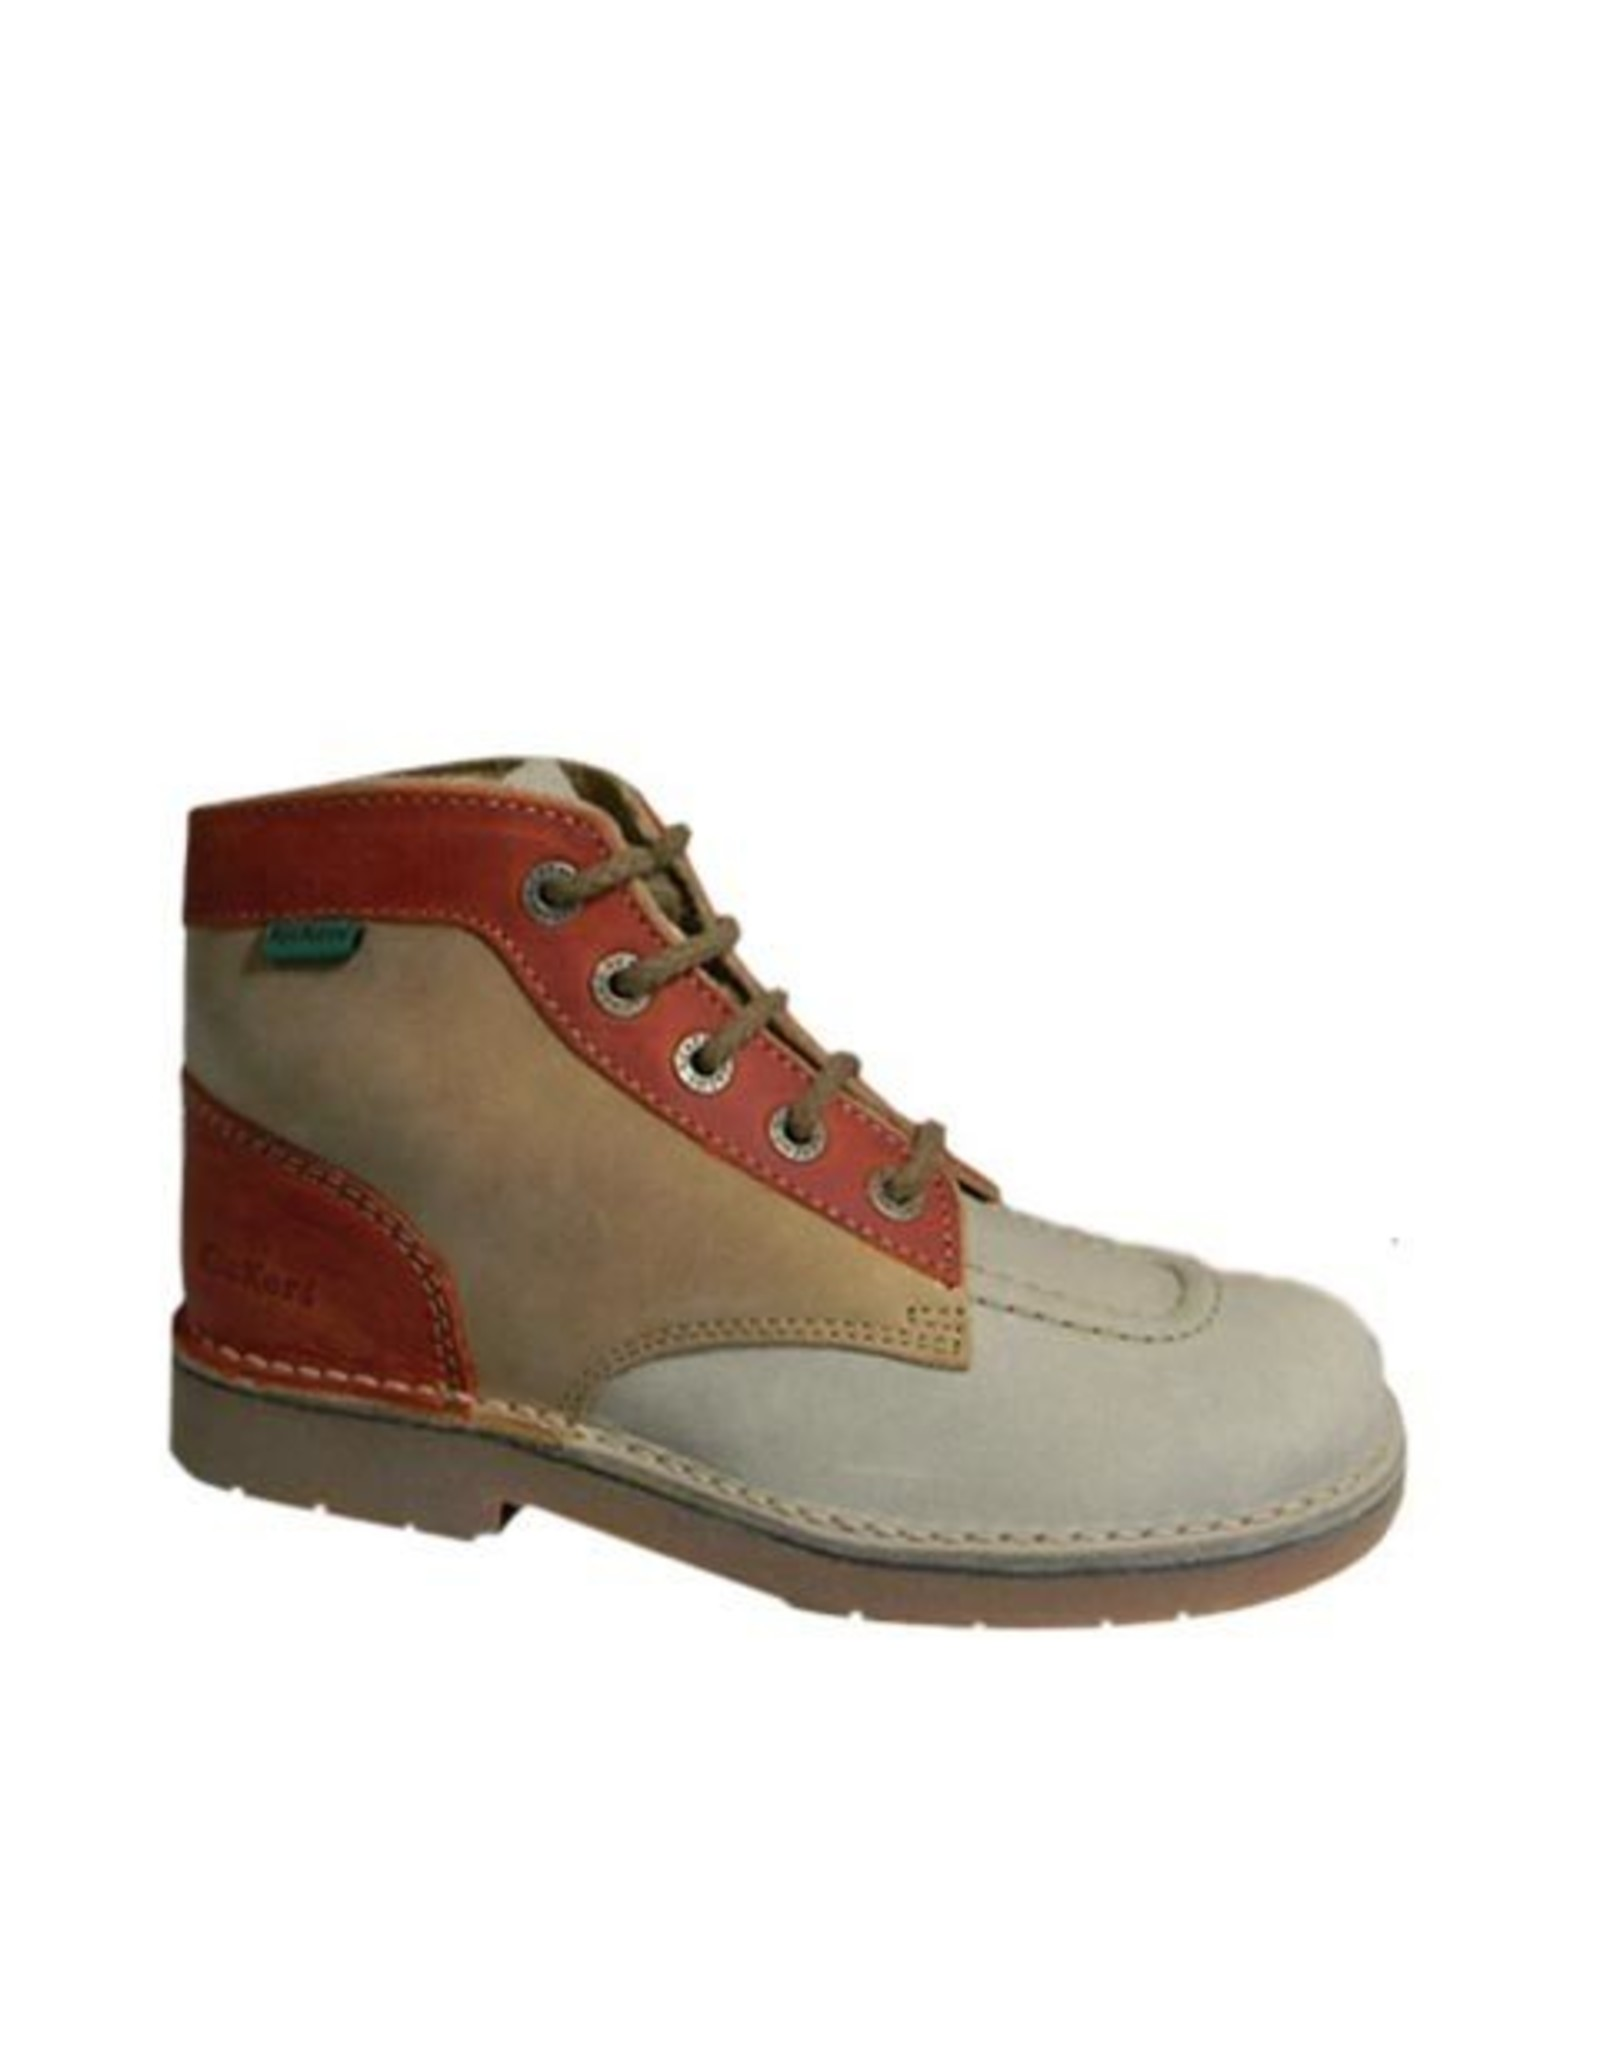 KICKERS KICK COL BROWN LIGHT BRIQUE K85MCO